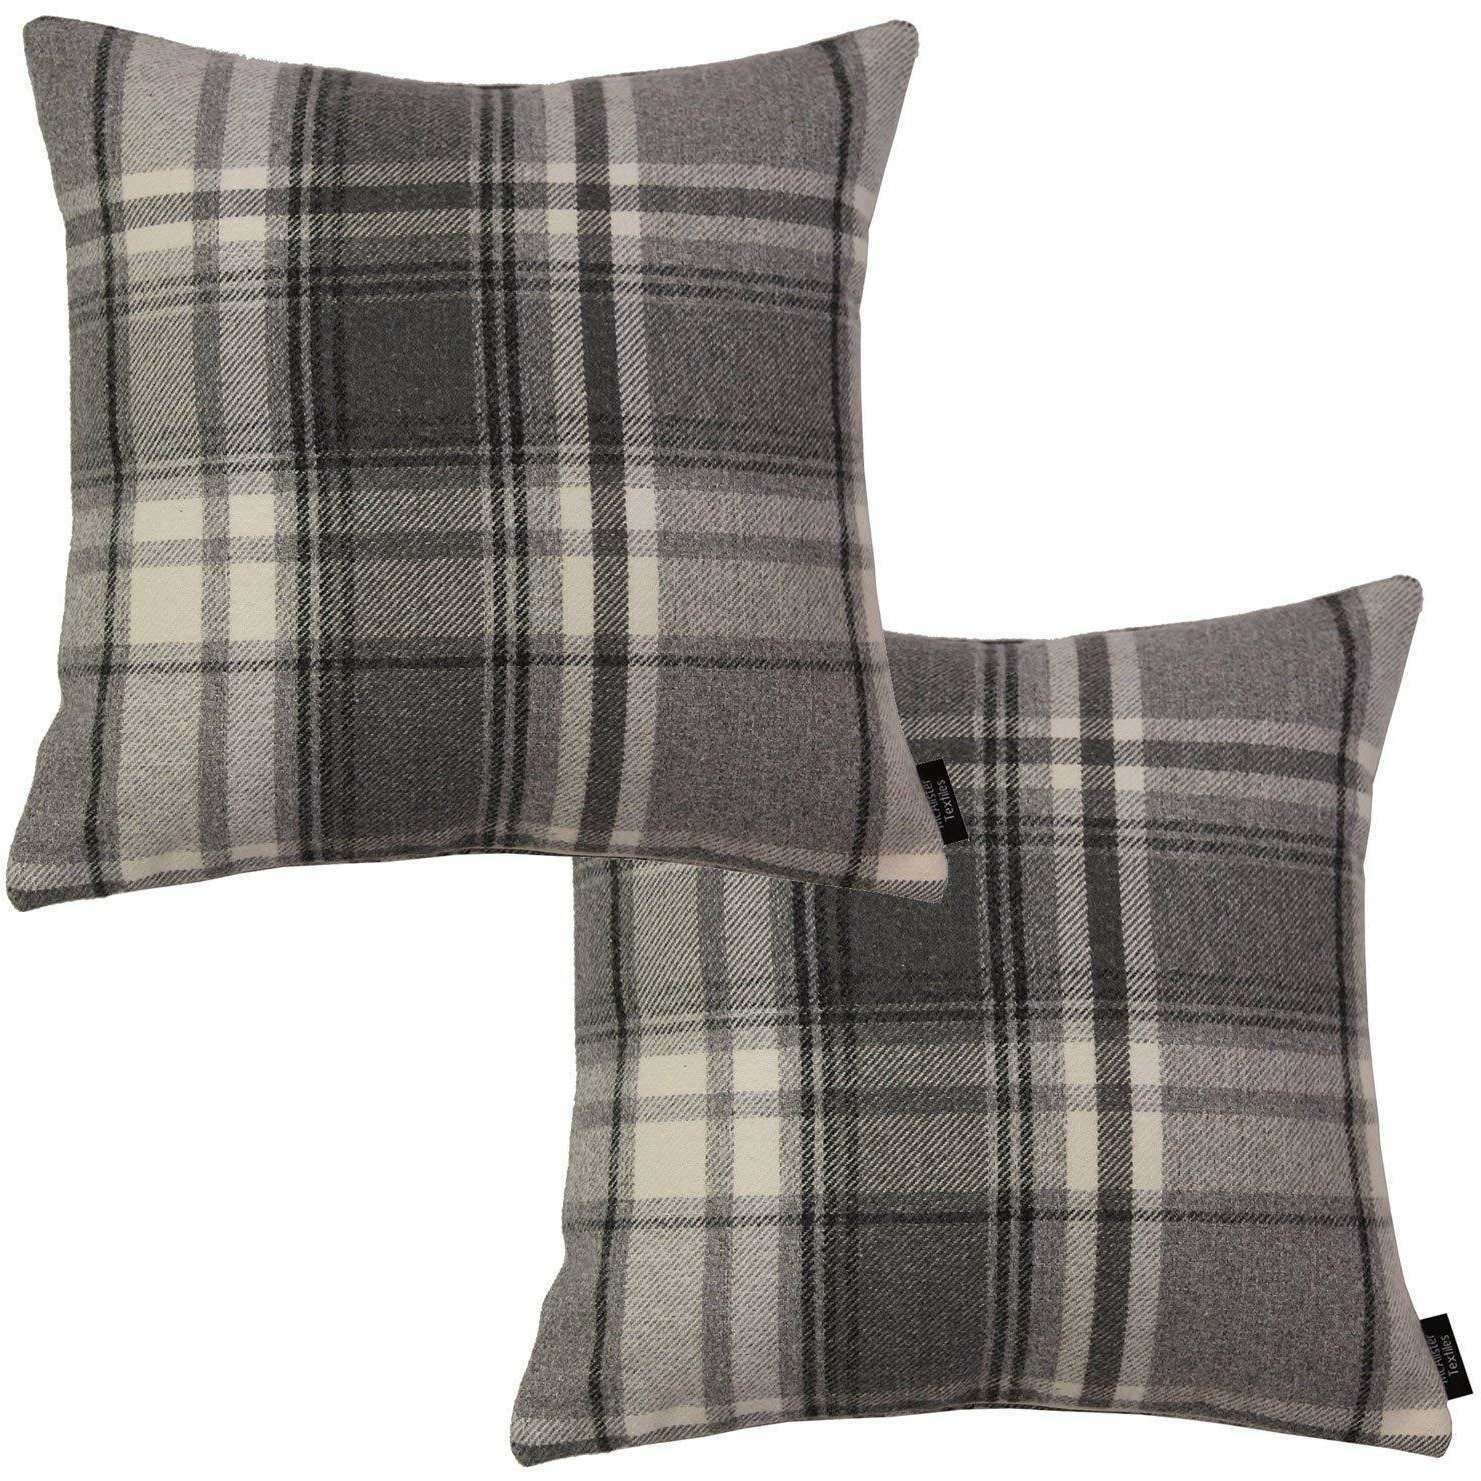 McAlister Textiles Heritage Charcoal Grey Tartan 43cm x 43cm Cushion Sets Cushions and Covers Cushion Covers Set of 2